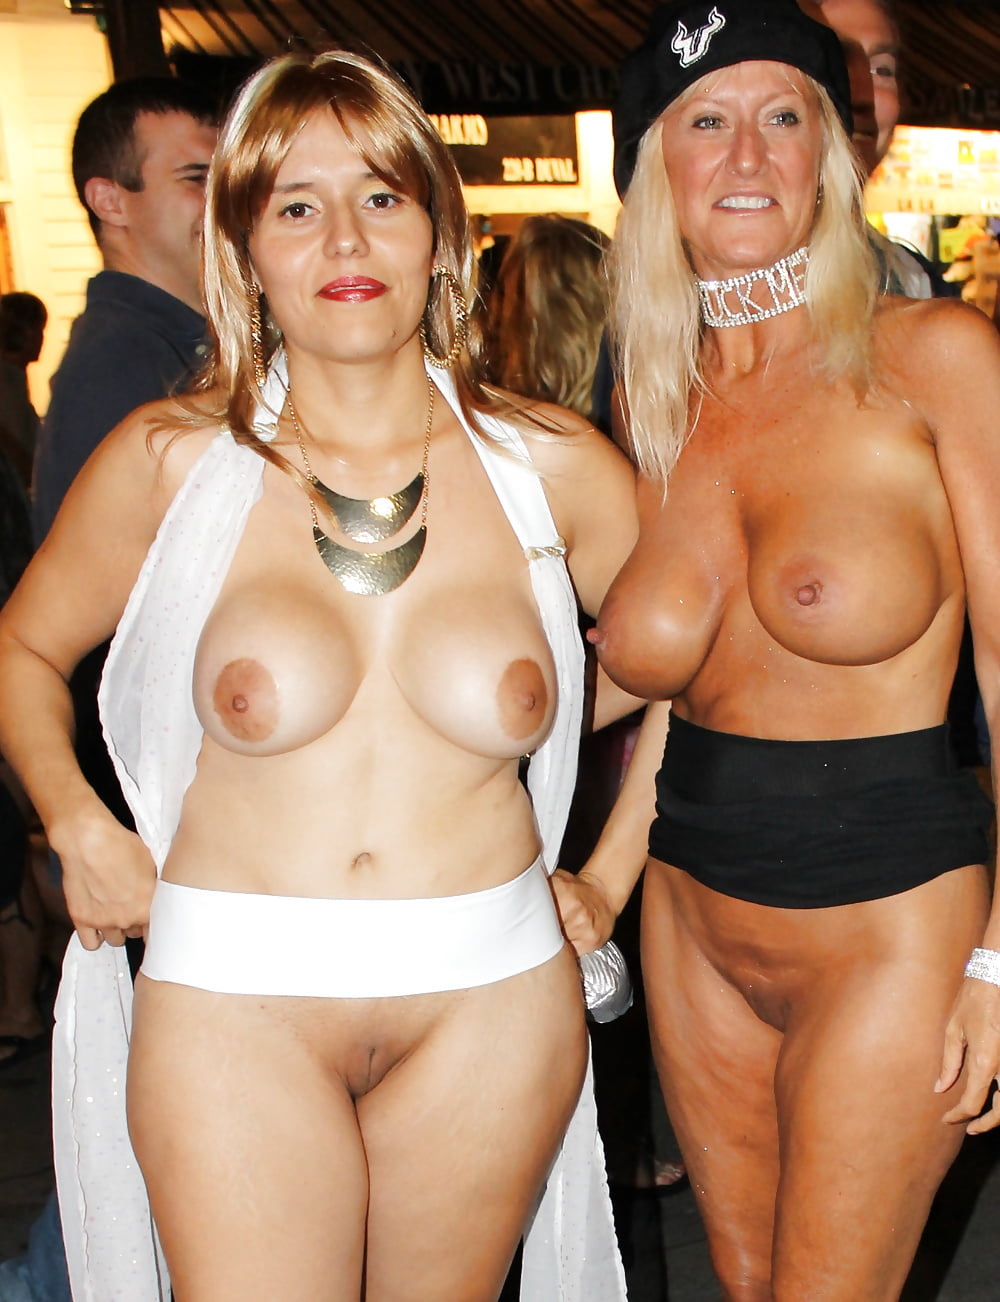 Real glory holes with girls canada